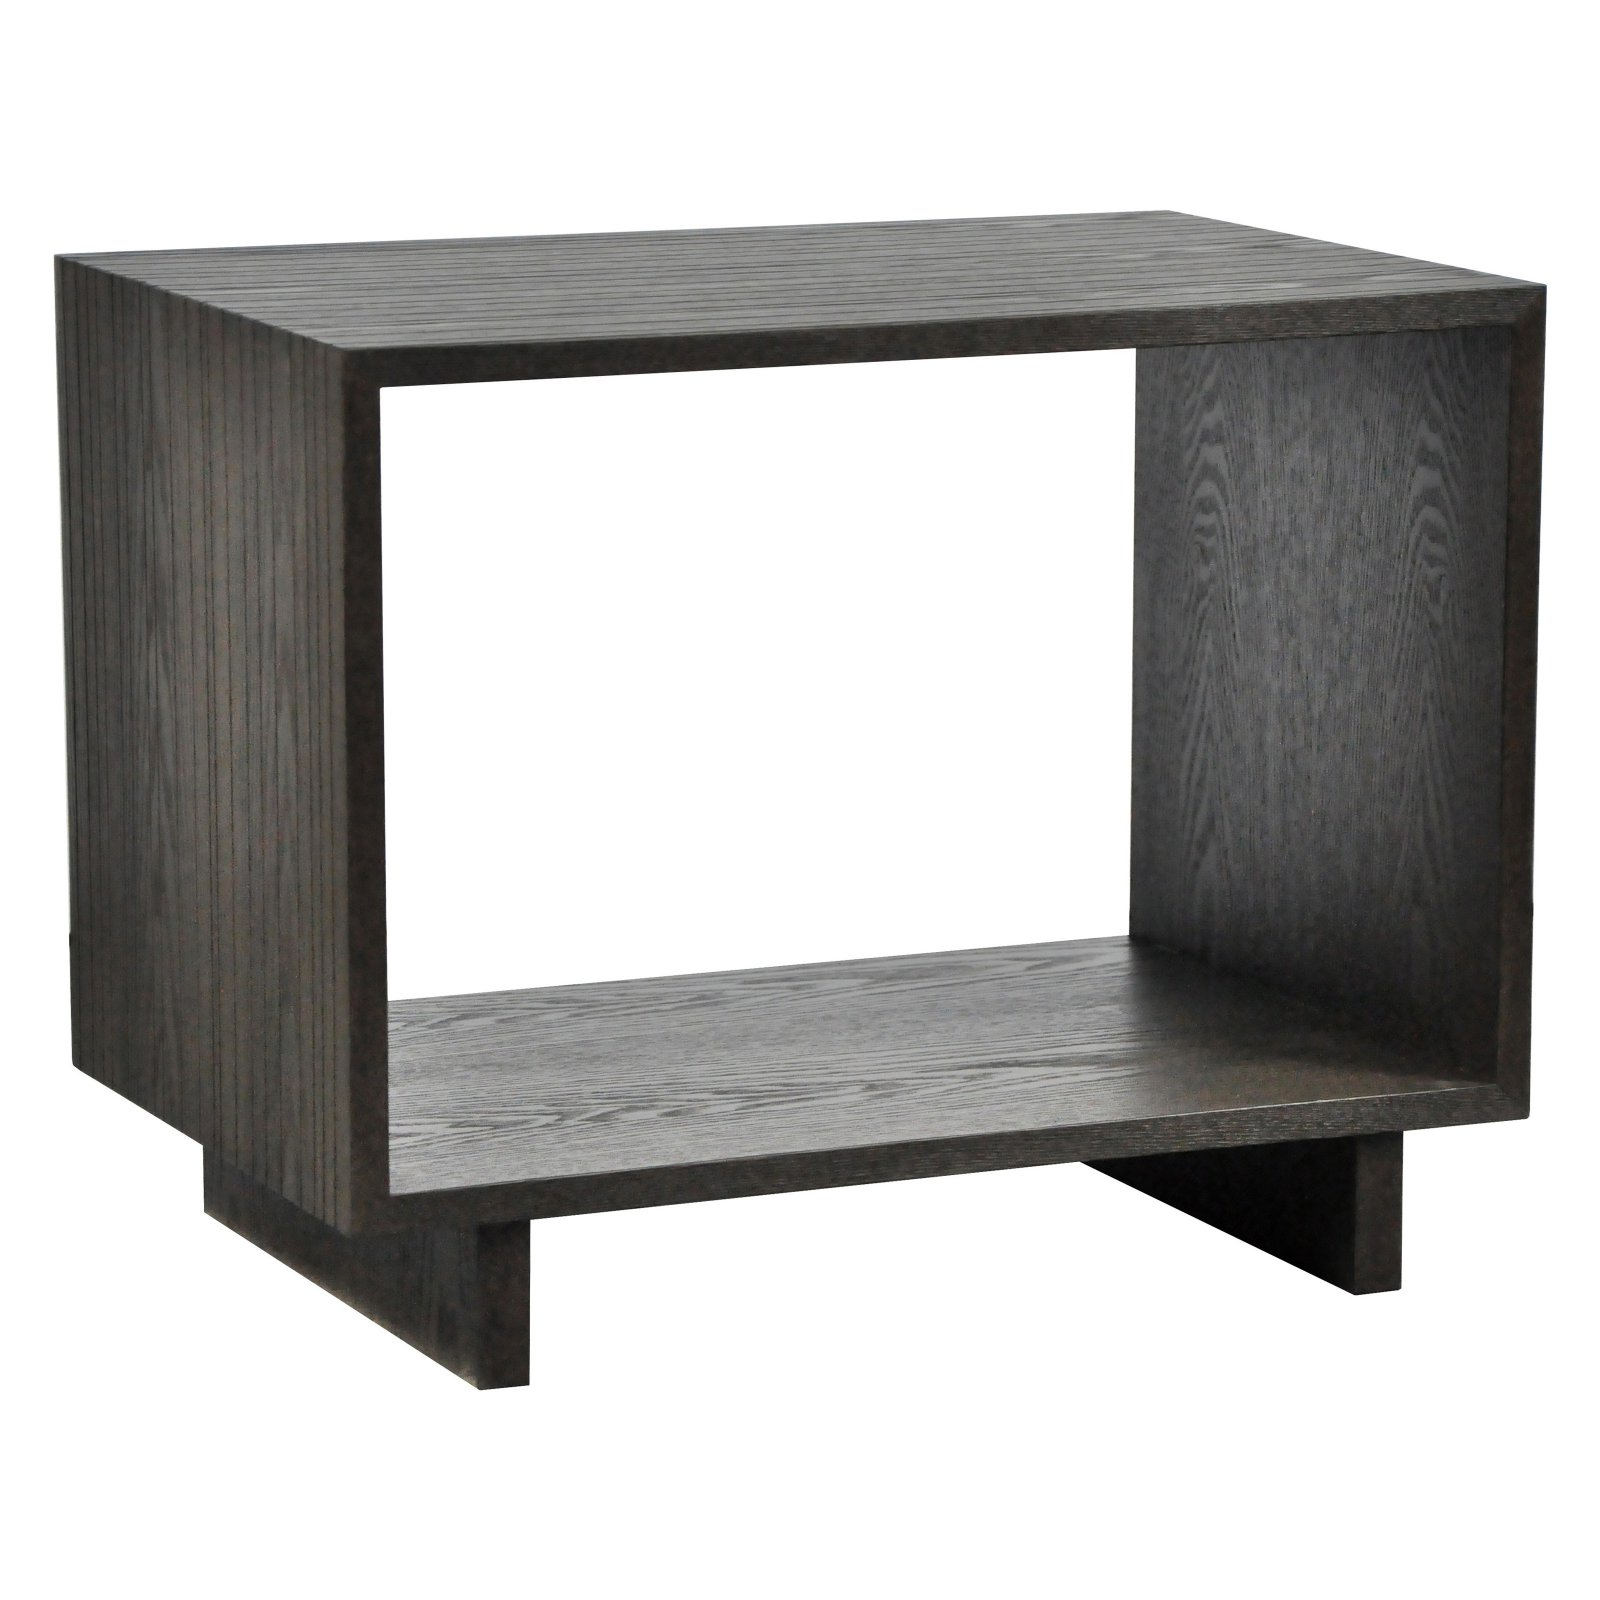 Safavieh Raylan Stand, Multiple Colors